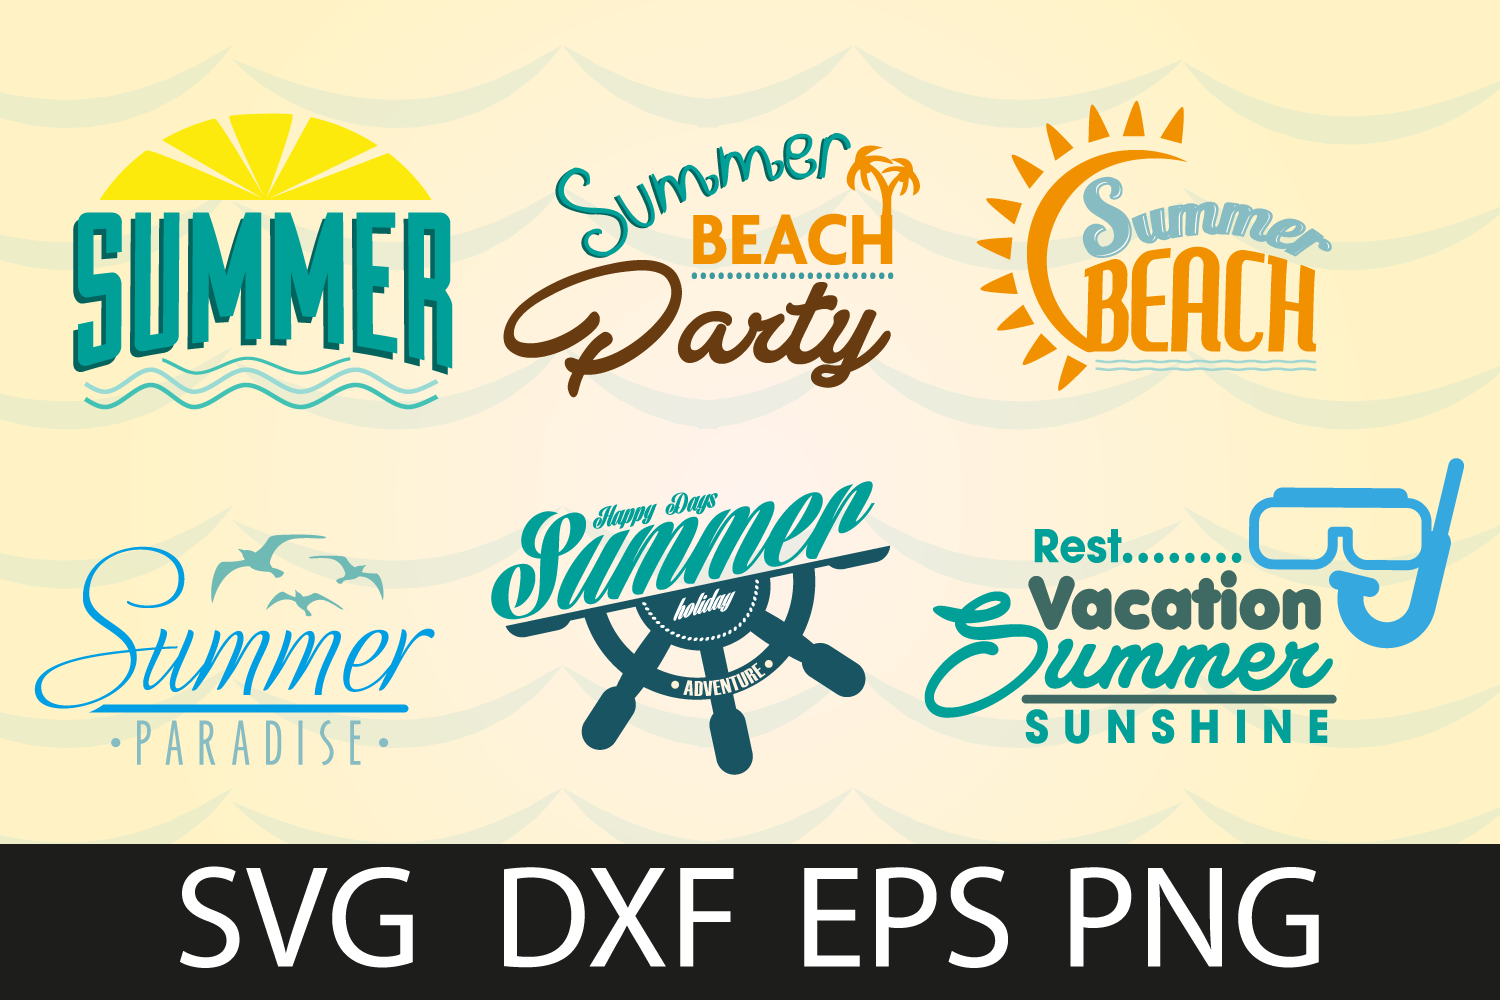 Summer Beach SVG DXF EPS PNG example image 1